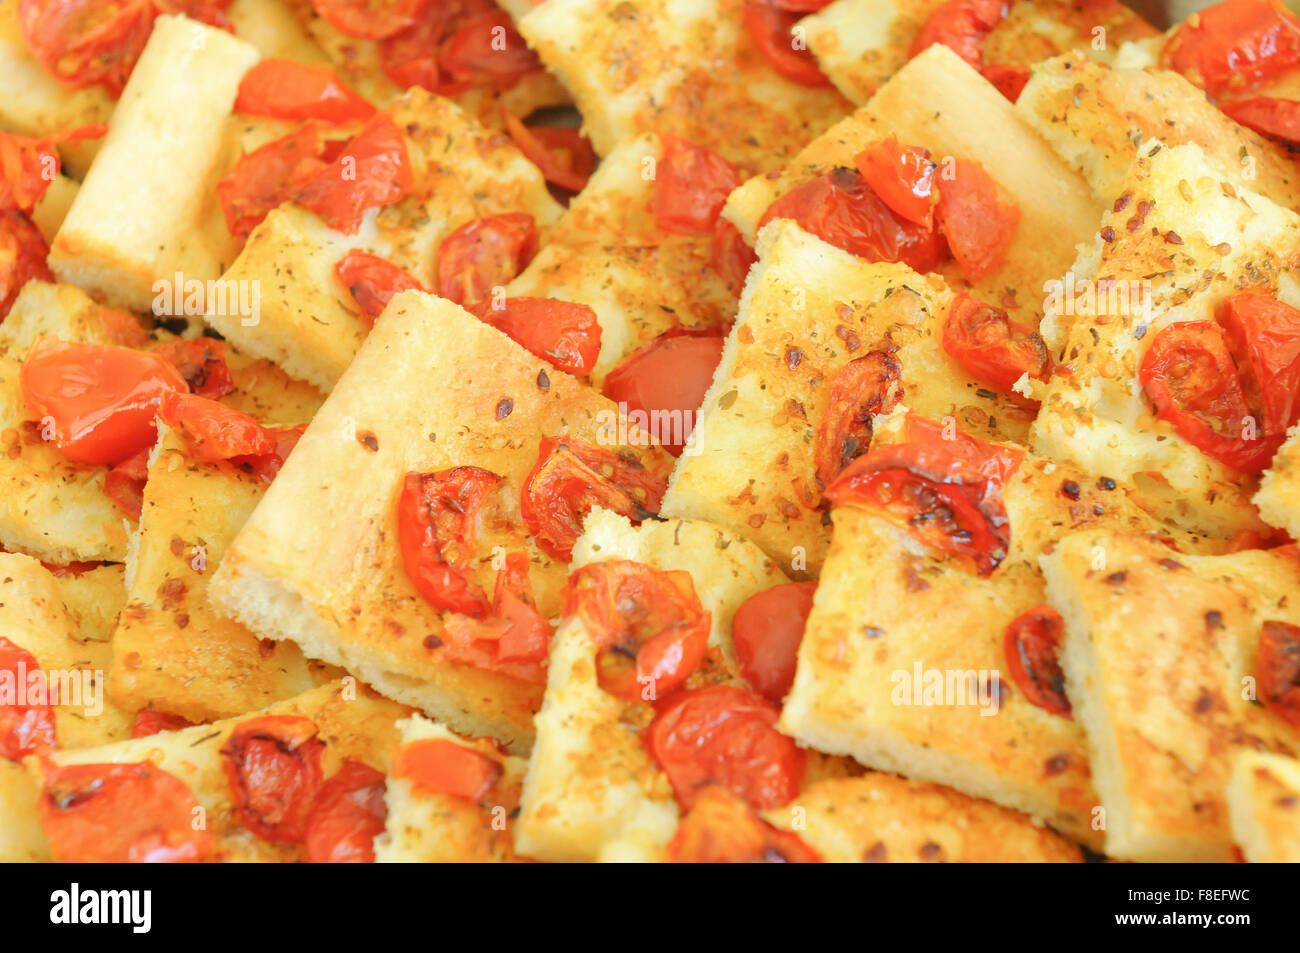 Slices of Pizza with cherry tomato, oil, oregano typical of Cilento.  Mediterranean diet talk about the good taste. - Stock Image